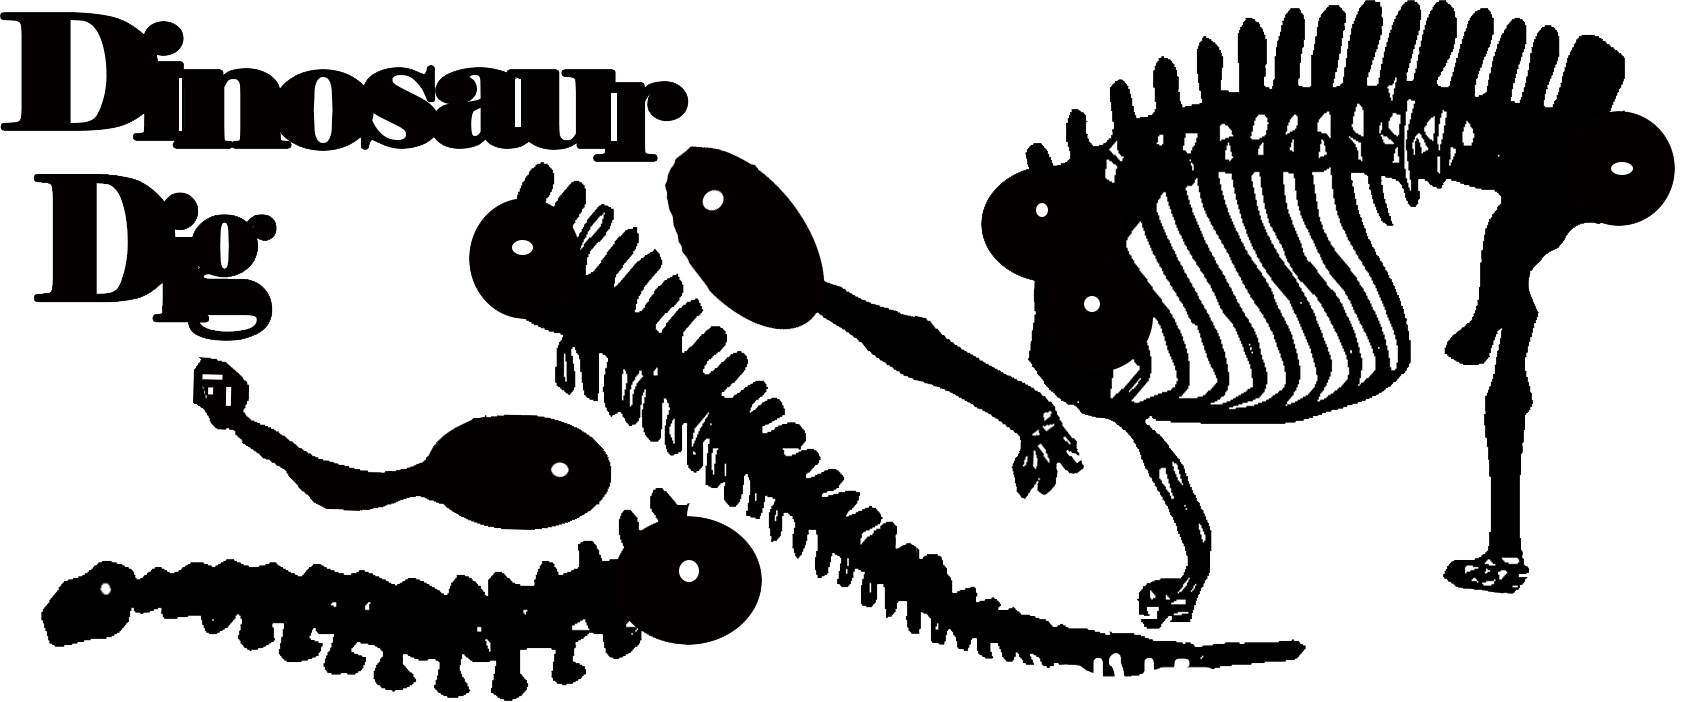 Dinosaur diplodicus skeleton 180 x 59mm sold individually